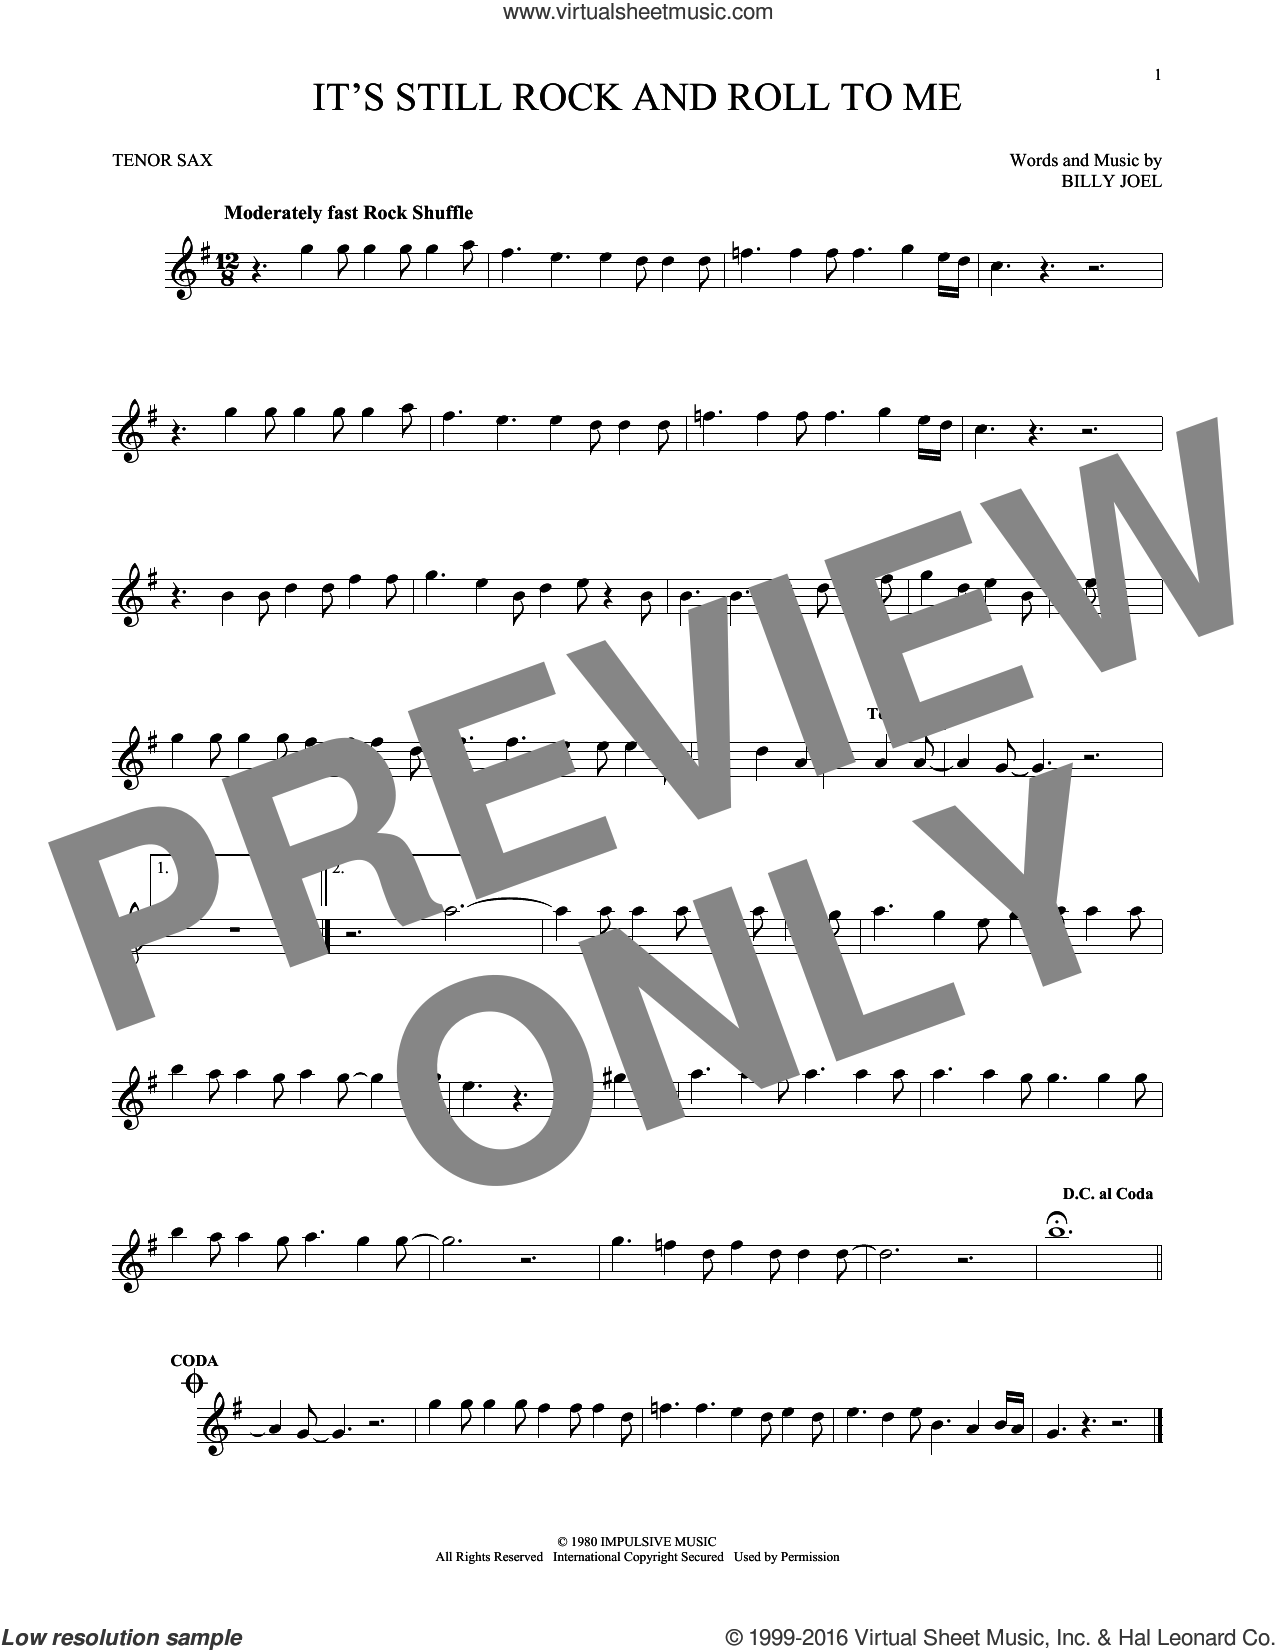 It's Still Rock And Roll To Me sheet music for tenor saxophone solo by Billy Joel, intermediate skill level